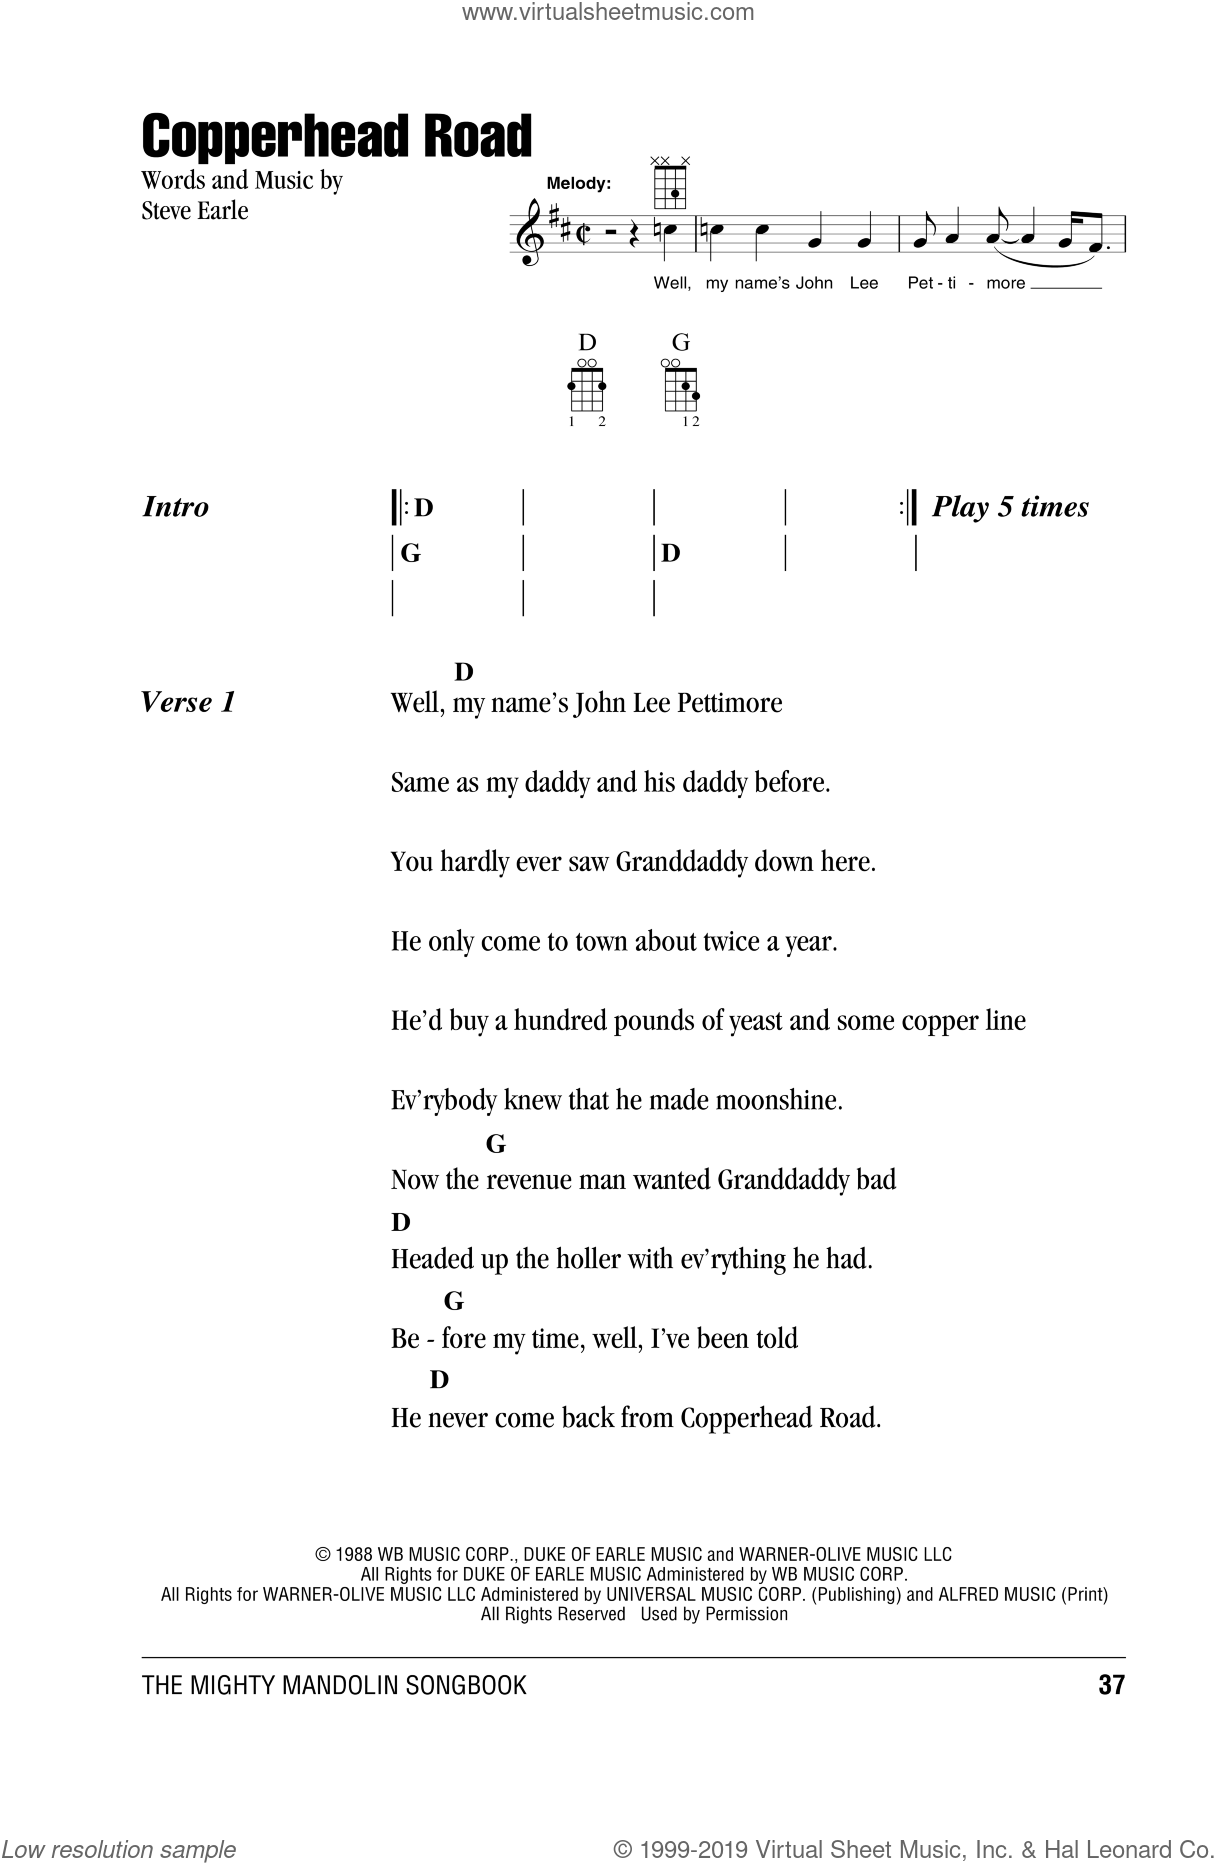 Earle   Copperhead Road sheet music for mandolin chords only ...